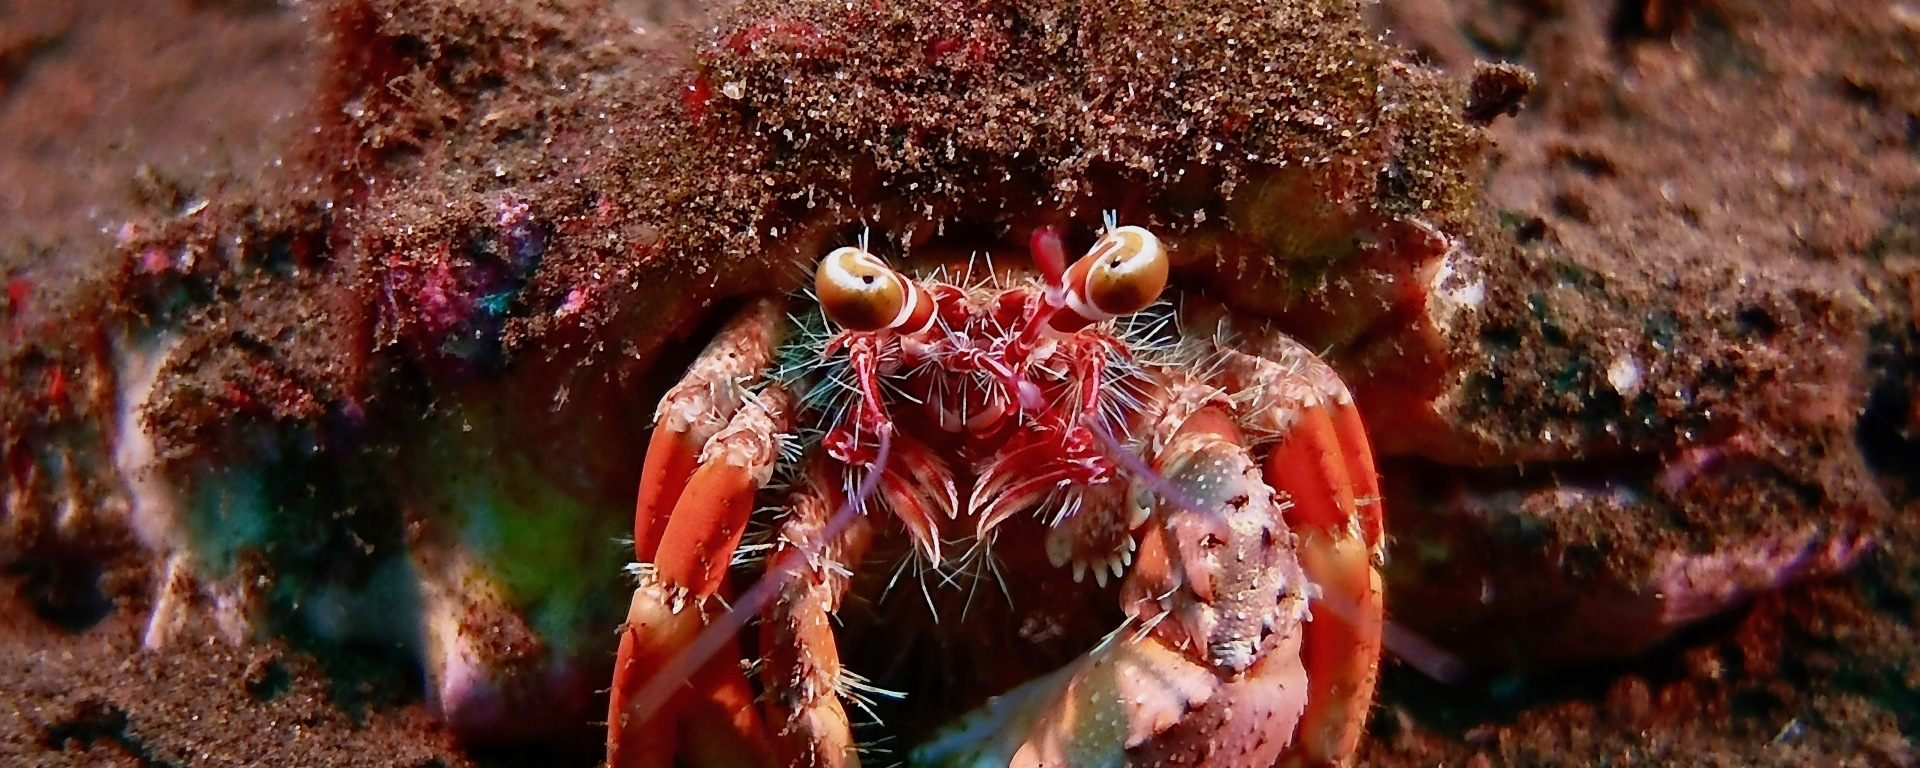 Crab Indonesia